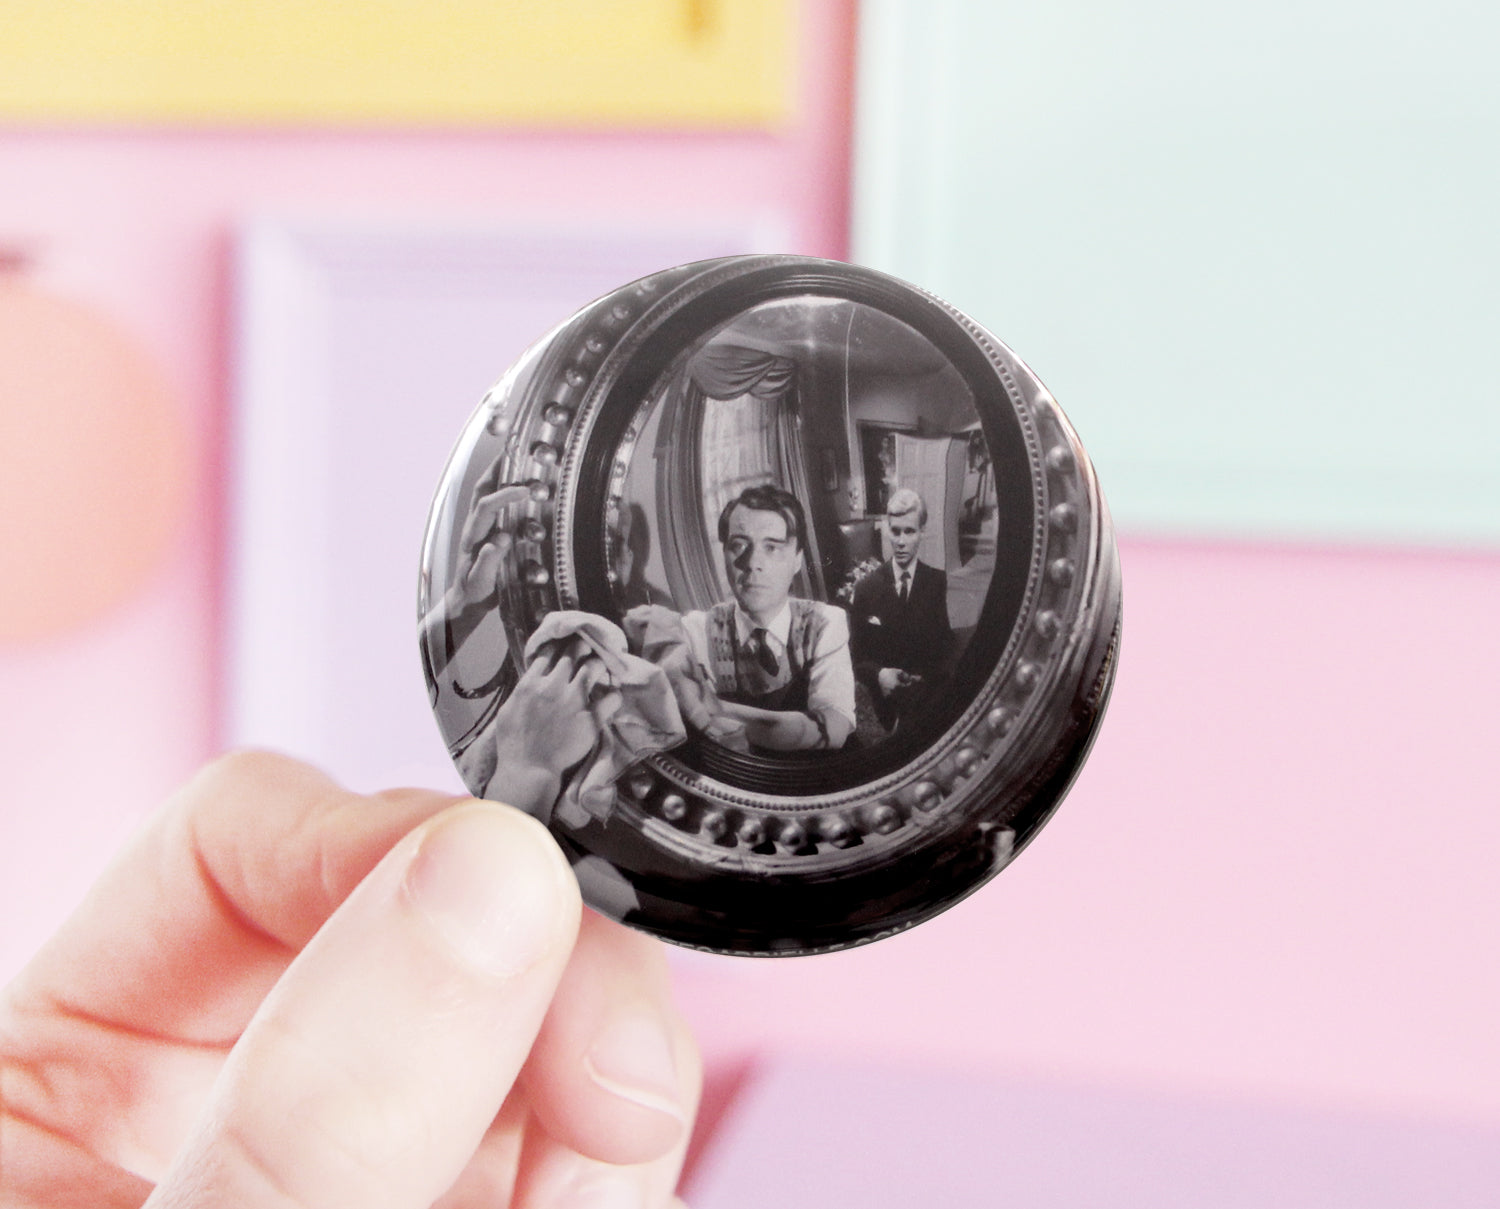 The Servant pocket mirror